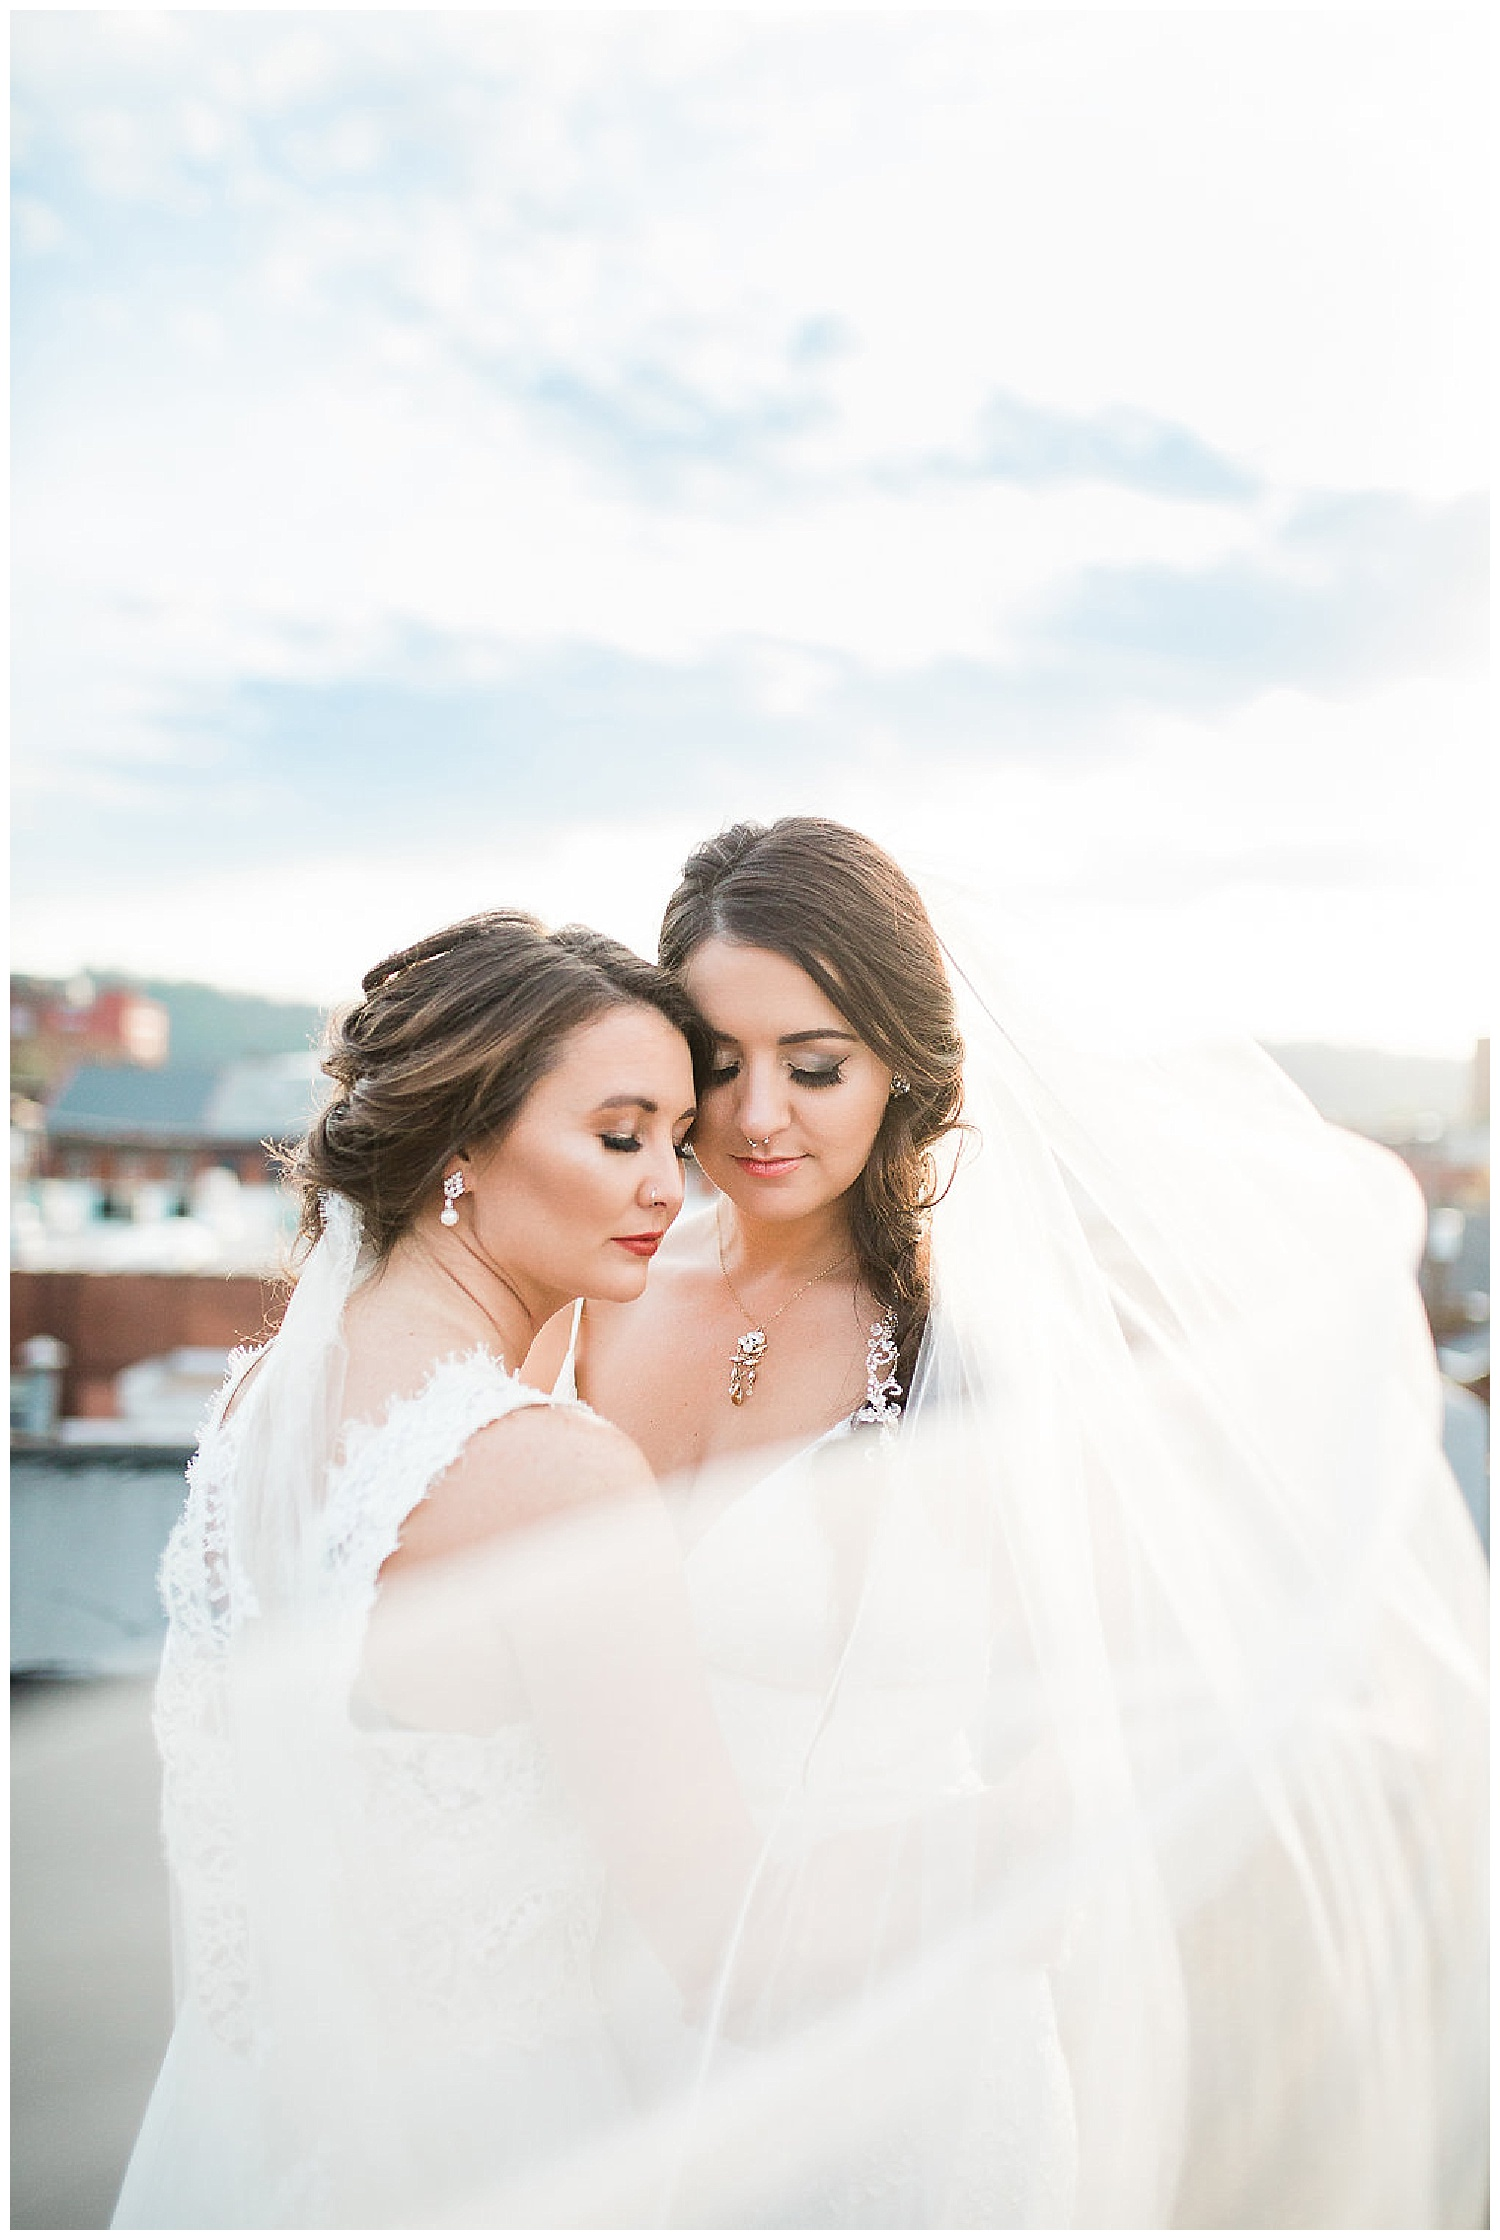 433d8aad83c Pride Month Wedding Inspiration at HIP at the Flashlight Factory ...